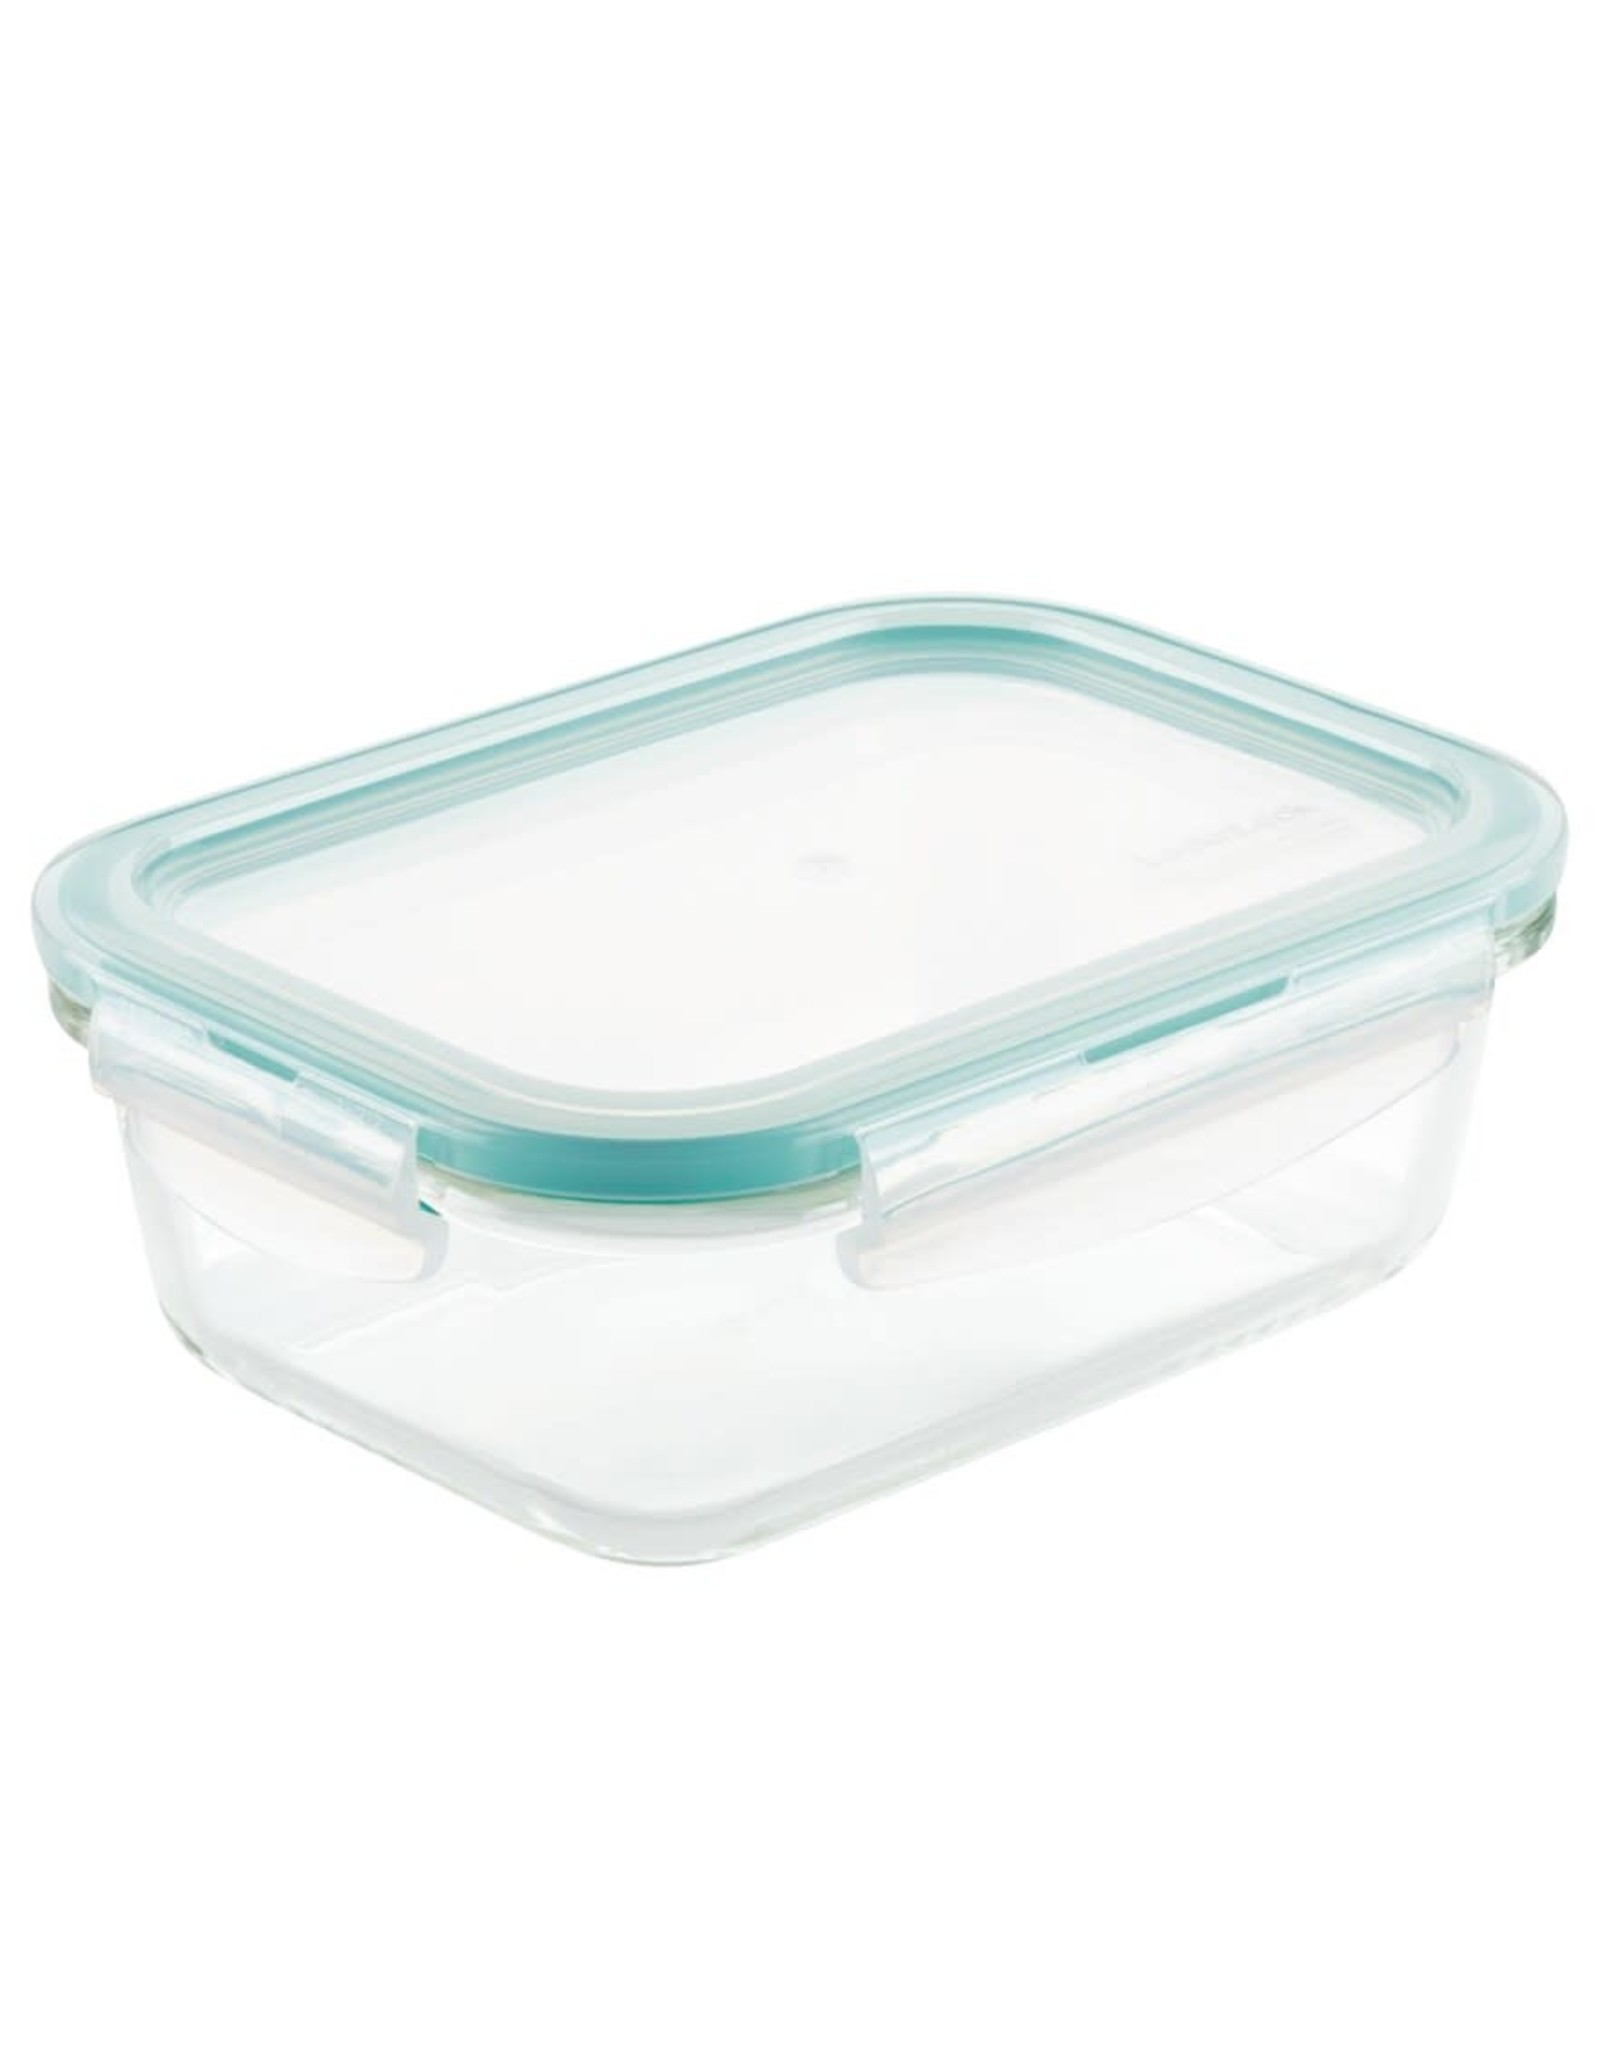 2.7 Cups/ 21 oz/ 630 ml Glass Rectangular Food Storage Container